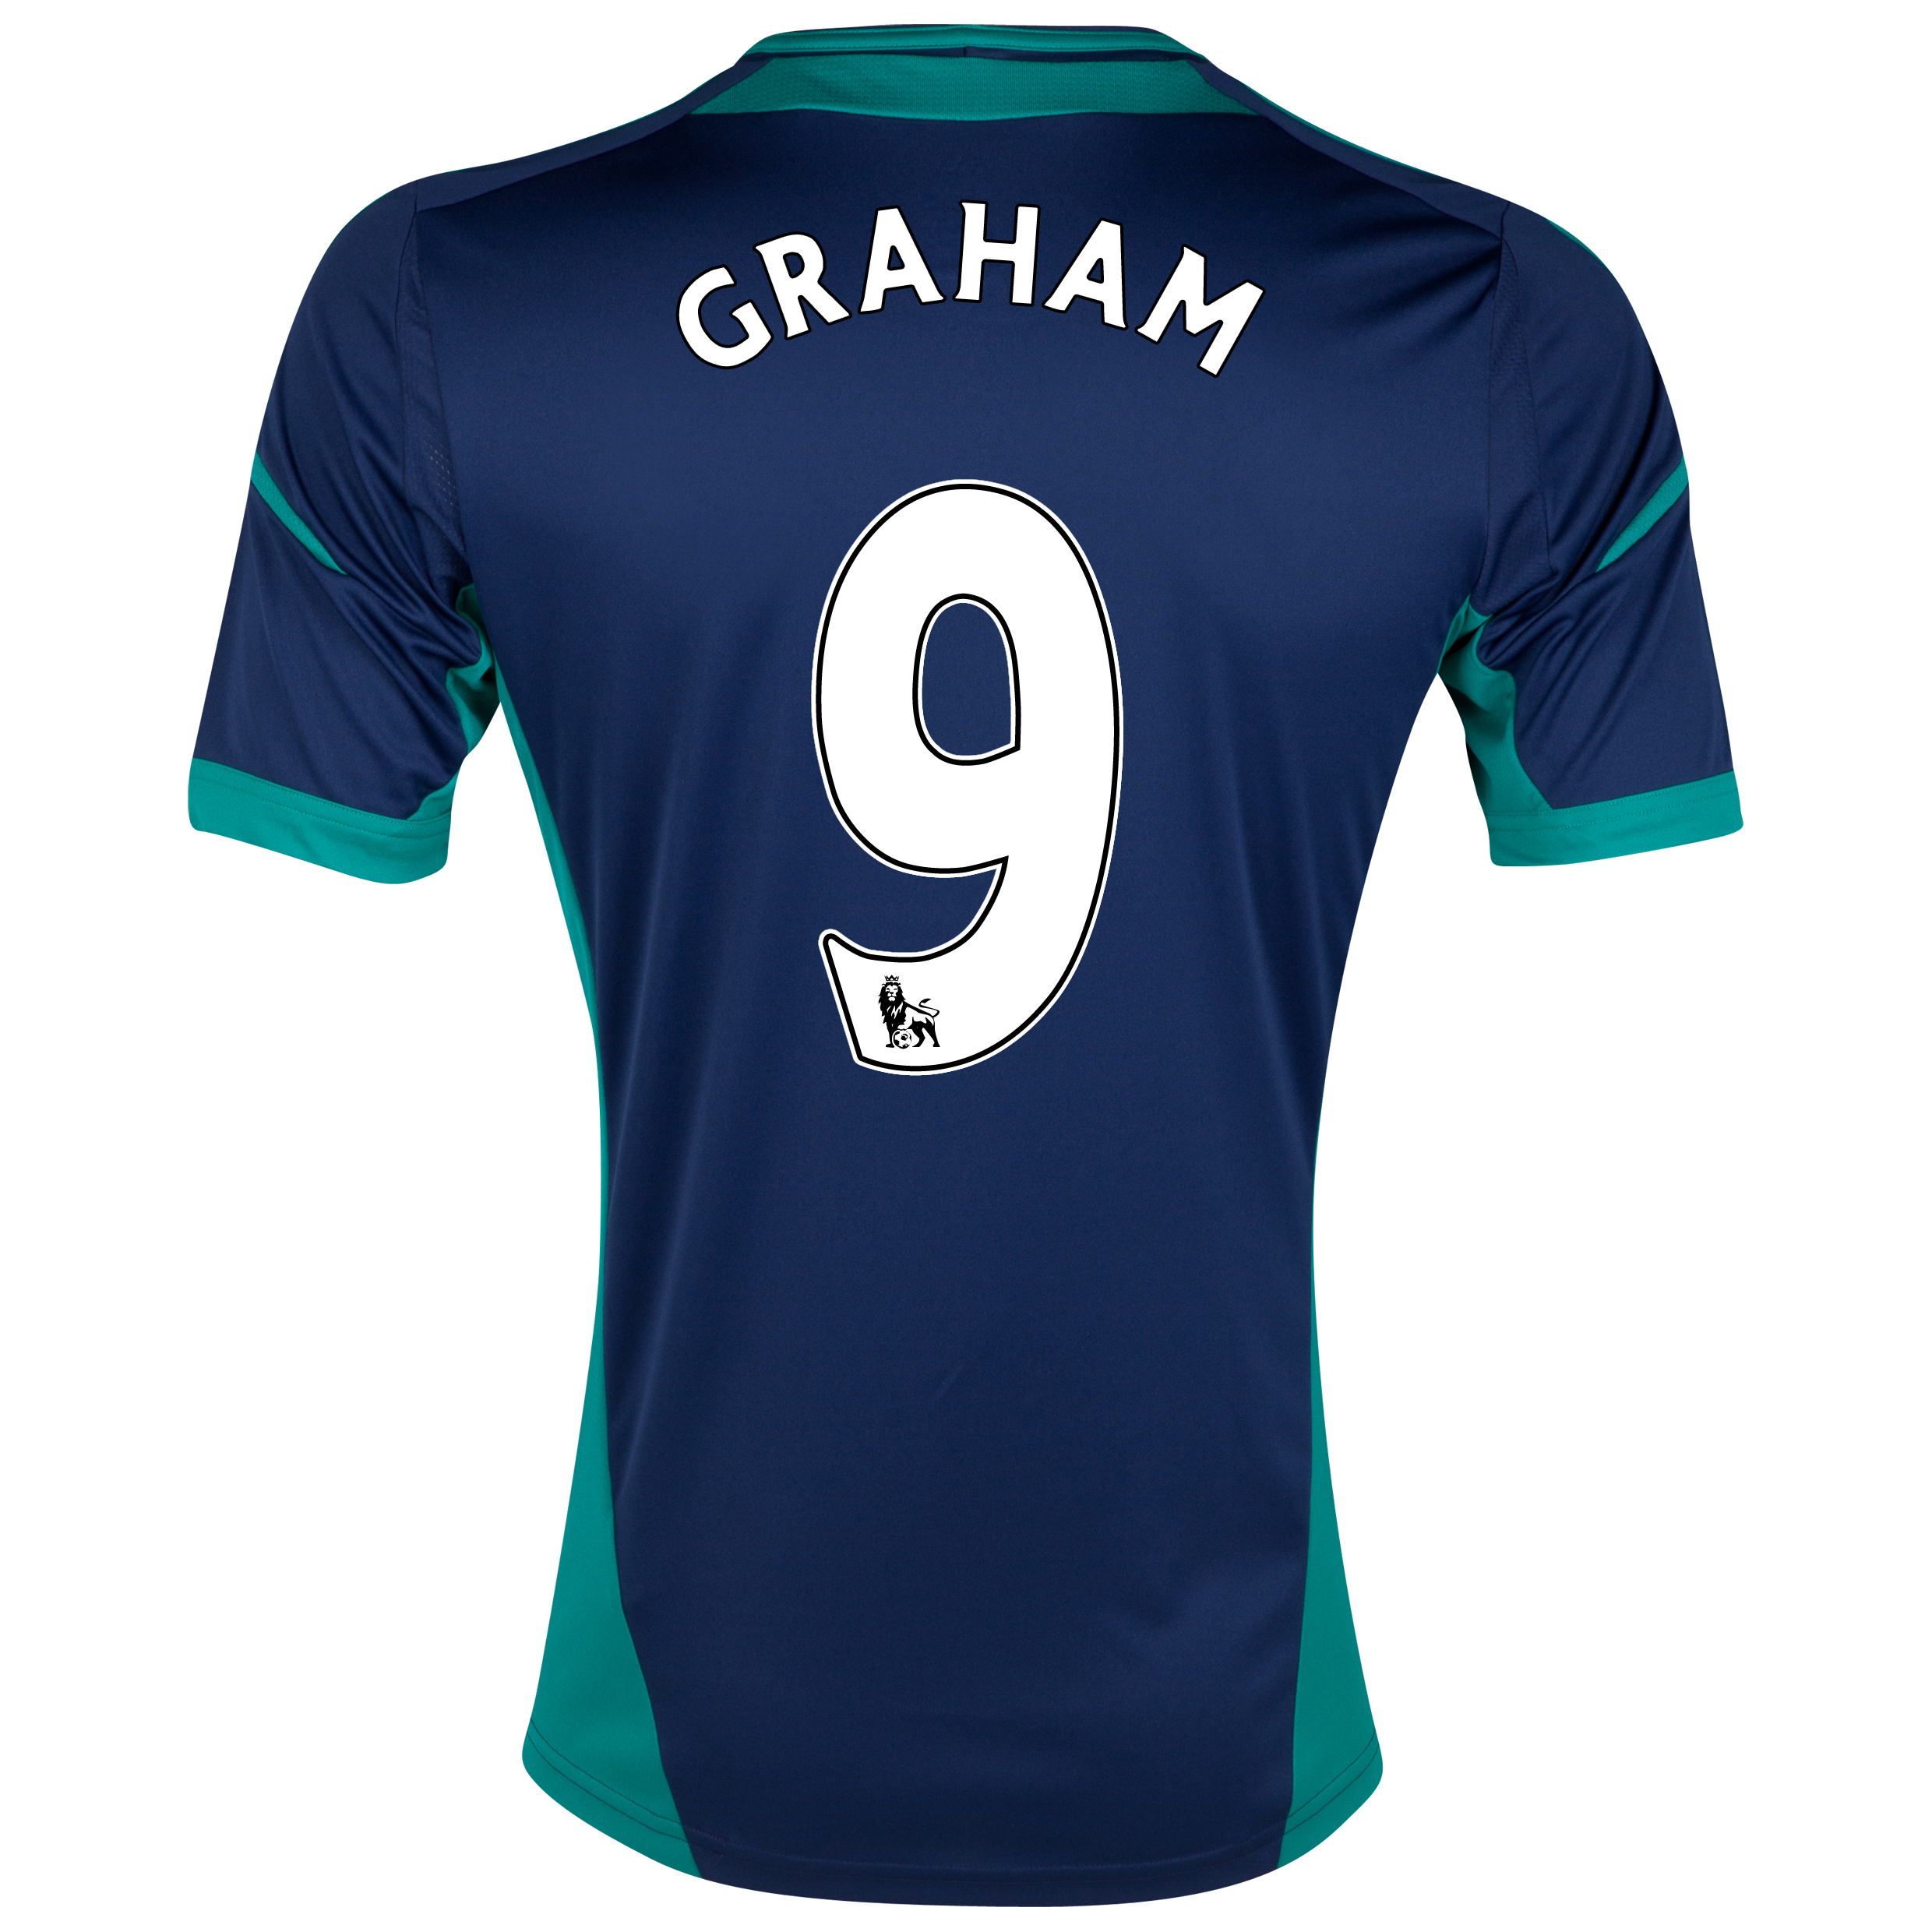 Sunderland Away Shirt 2012/13 with Graham 9 printing